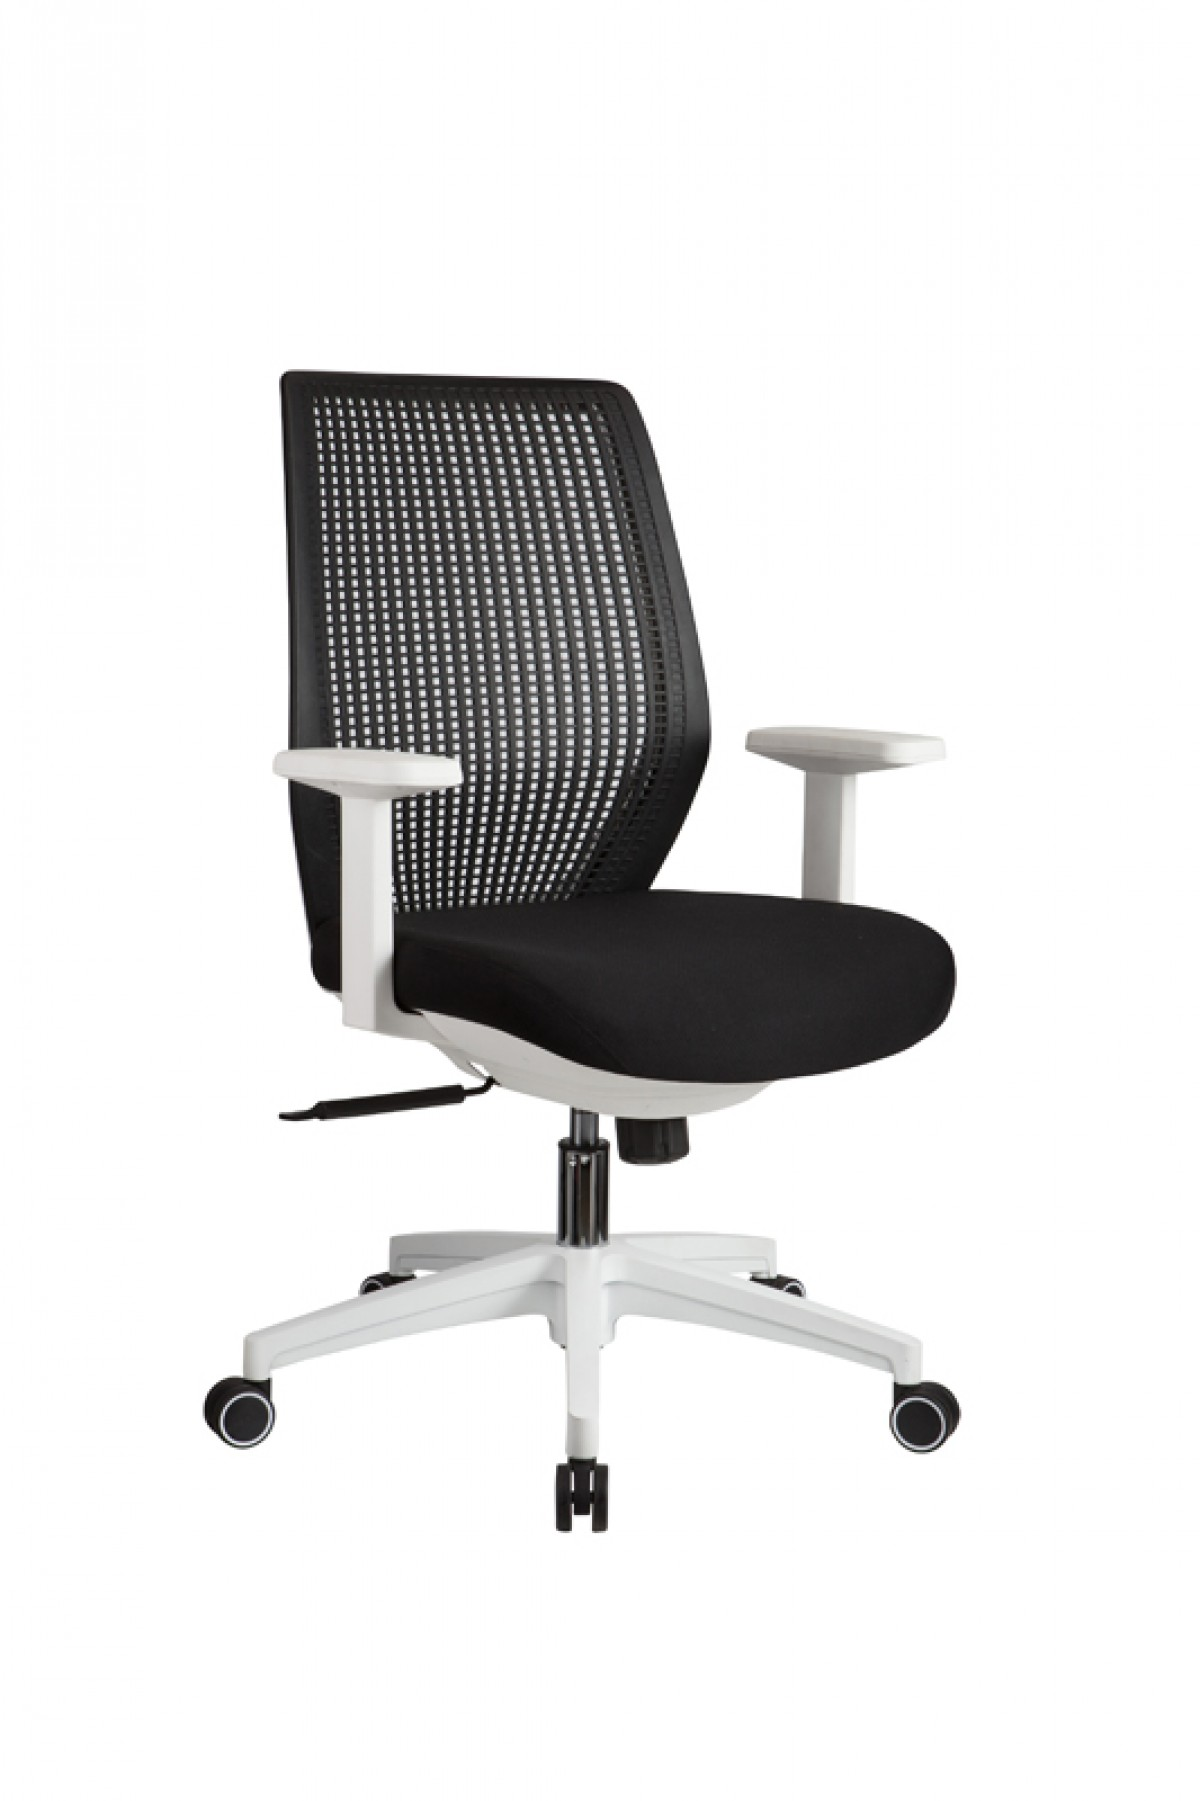 Modrest bayer modern black white office chair office for Modern white office chair